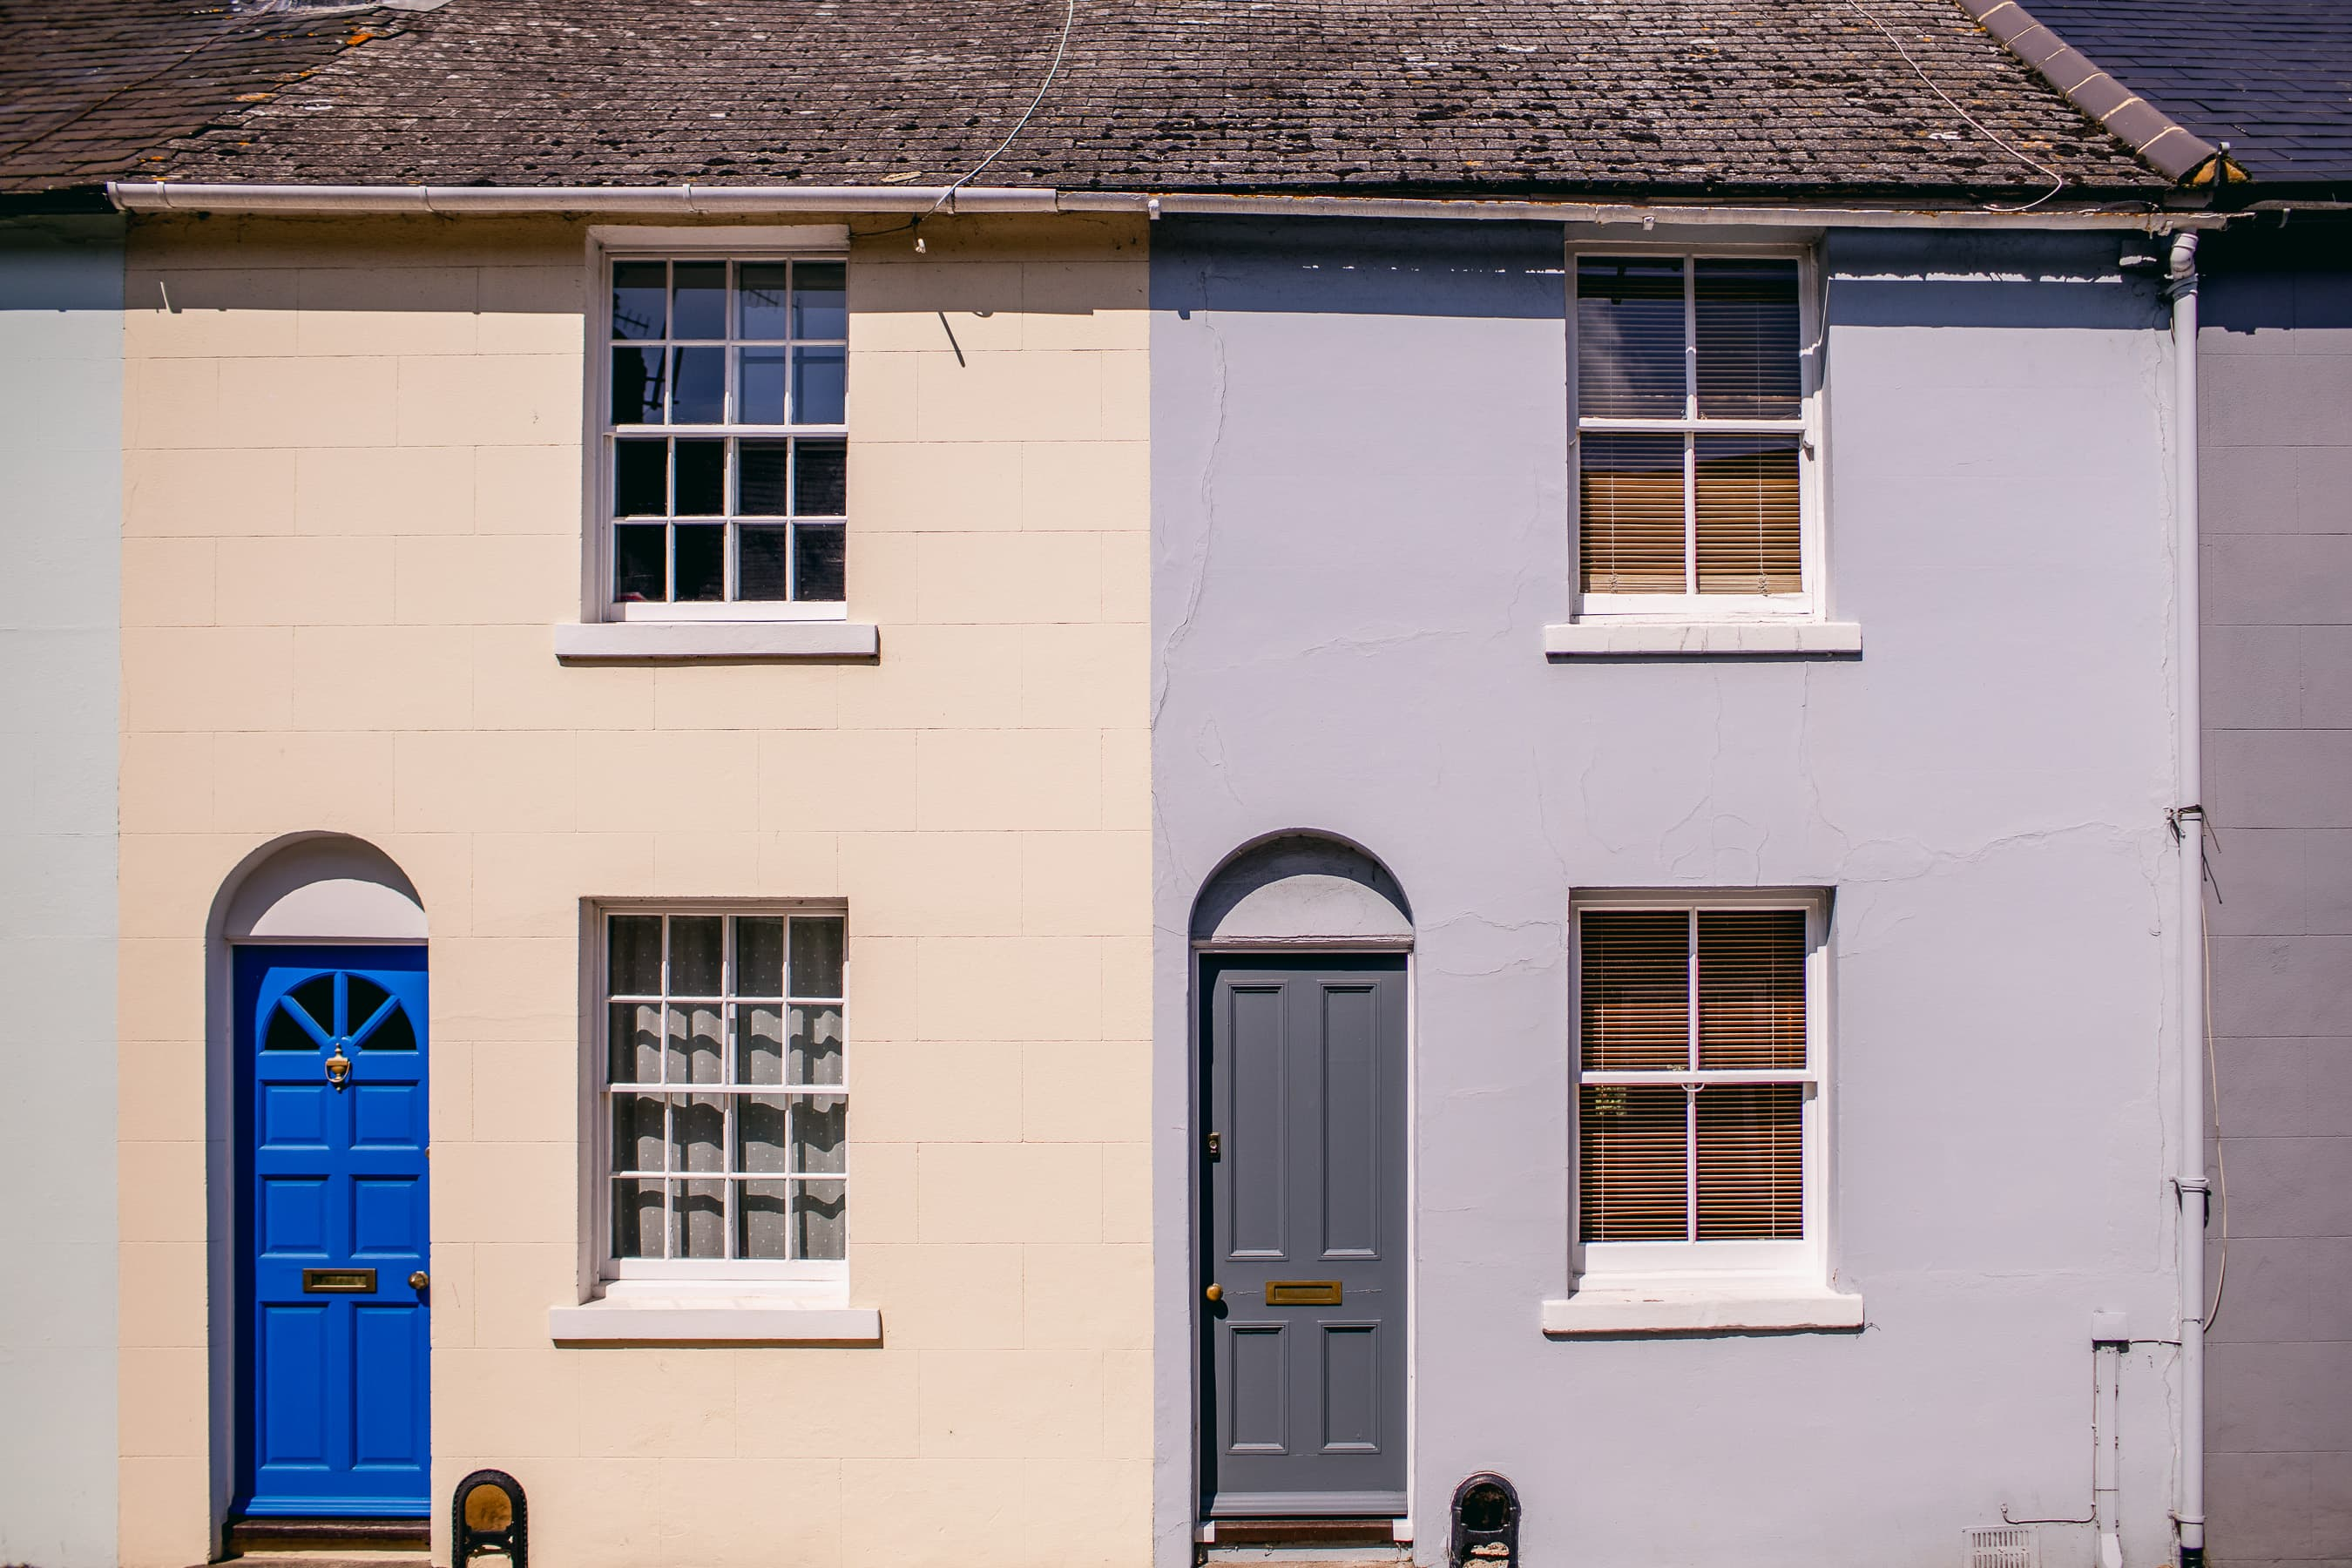 Terraced Houses in Lewes, East Sussexx